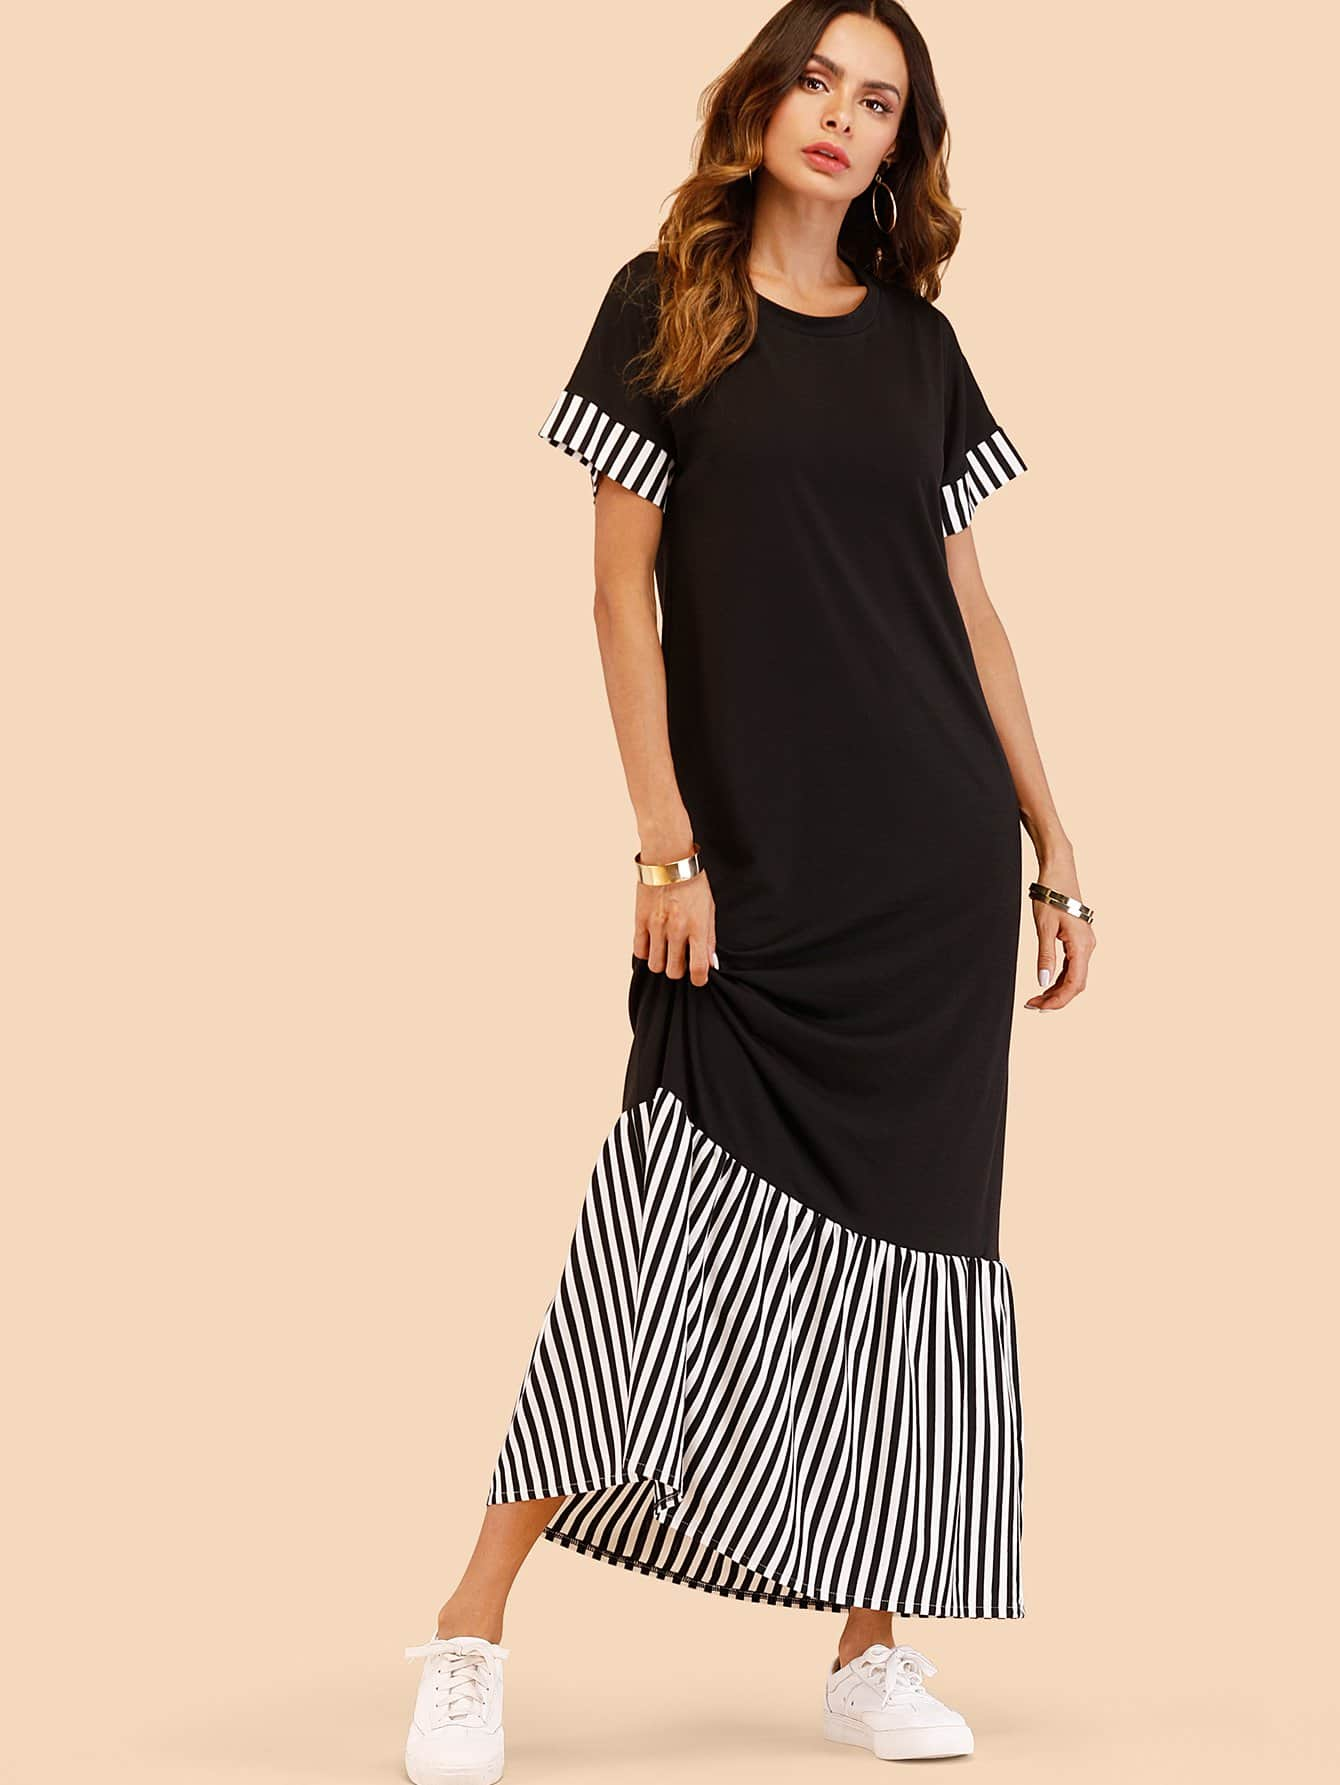 Vertical-Striped Patchwork Dress vowel length from latin to romance